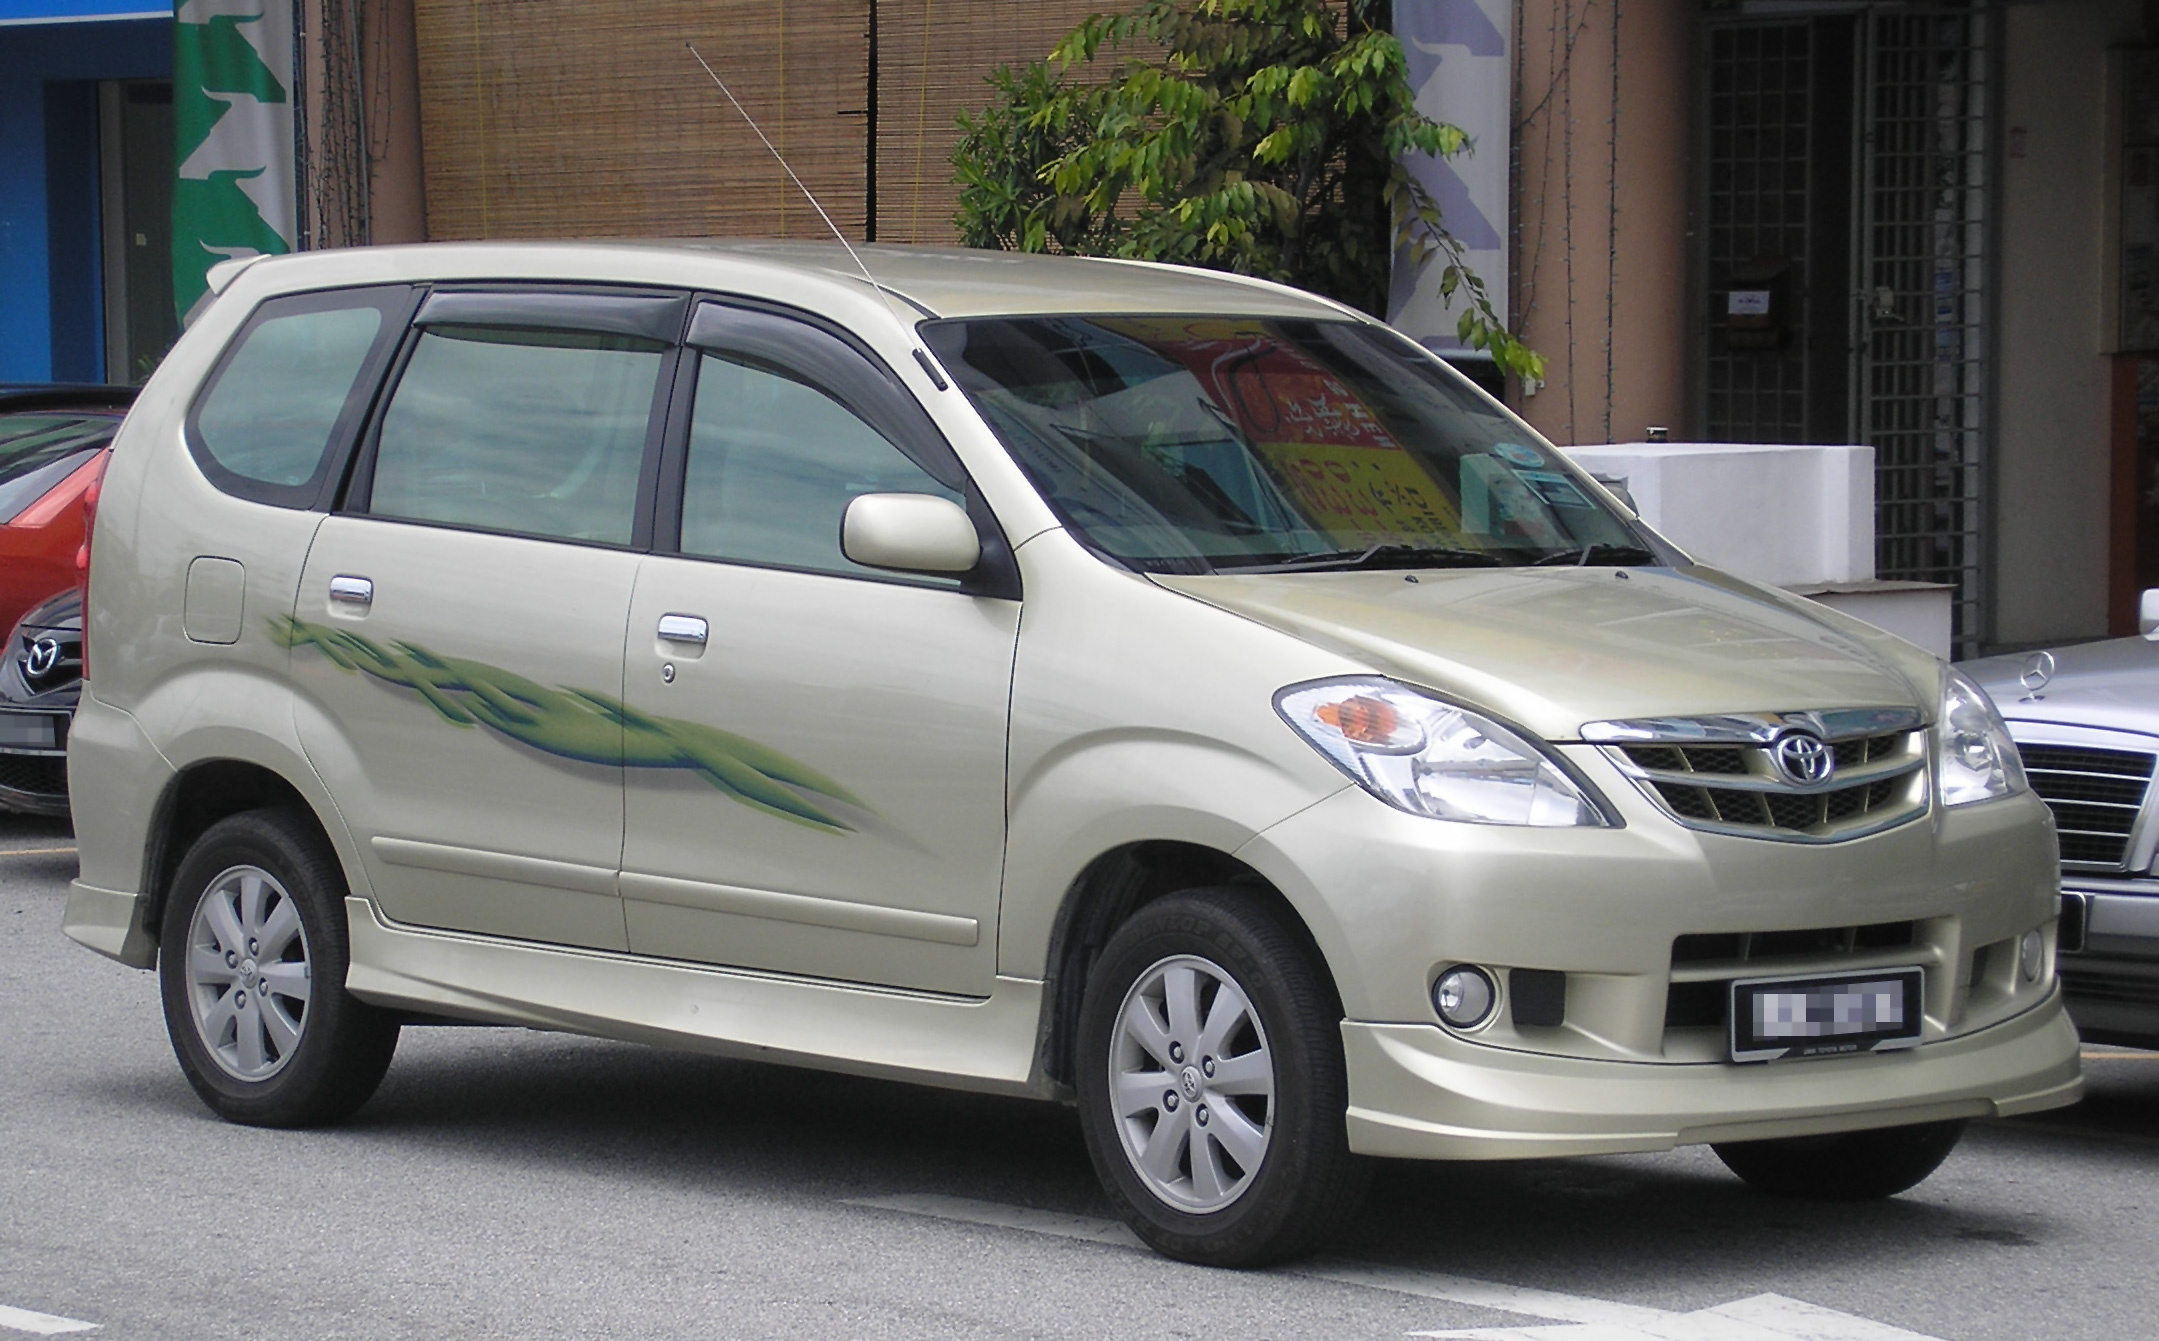 File:Toyota Avanza (first generation, first facelift) (front), Serdang